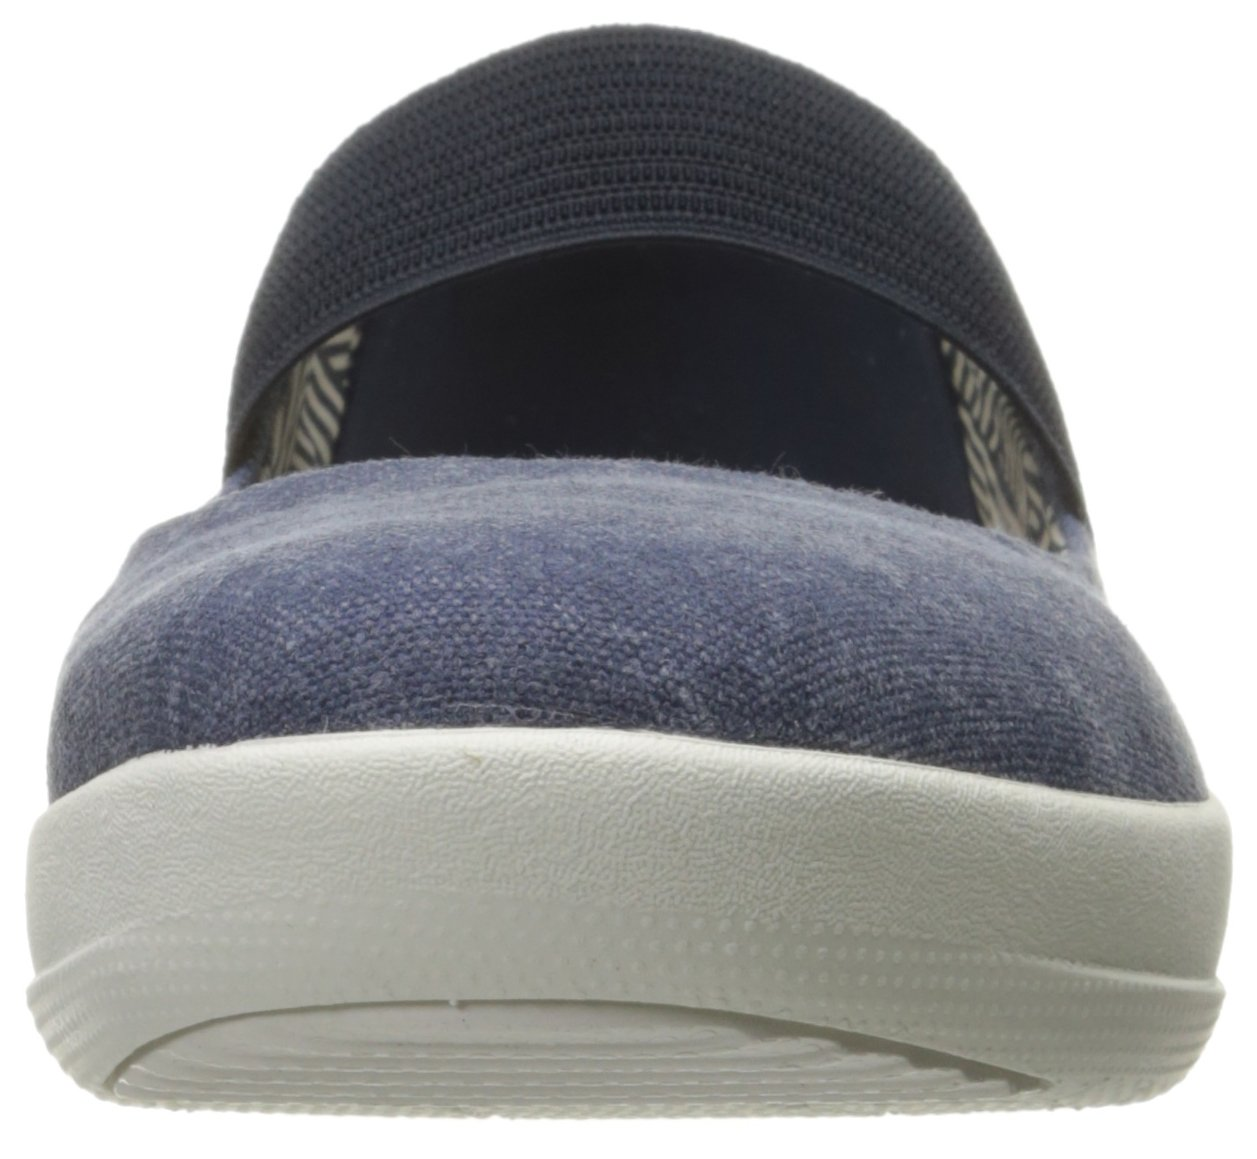 FitFlop Women's F-Sporty Mary Jane Flat, Midnight Navy, 6.5 M US by FitFlop (Image #4)